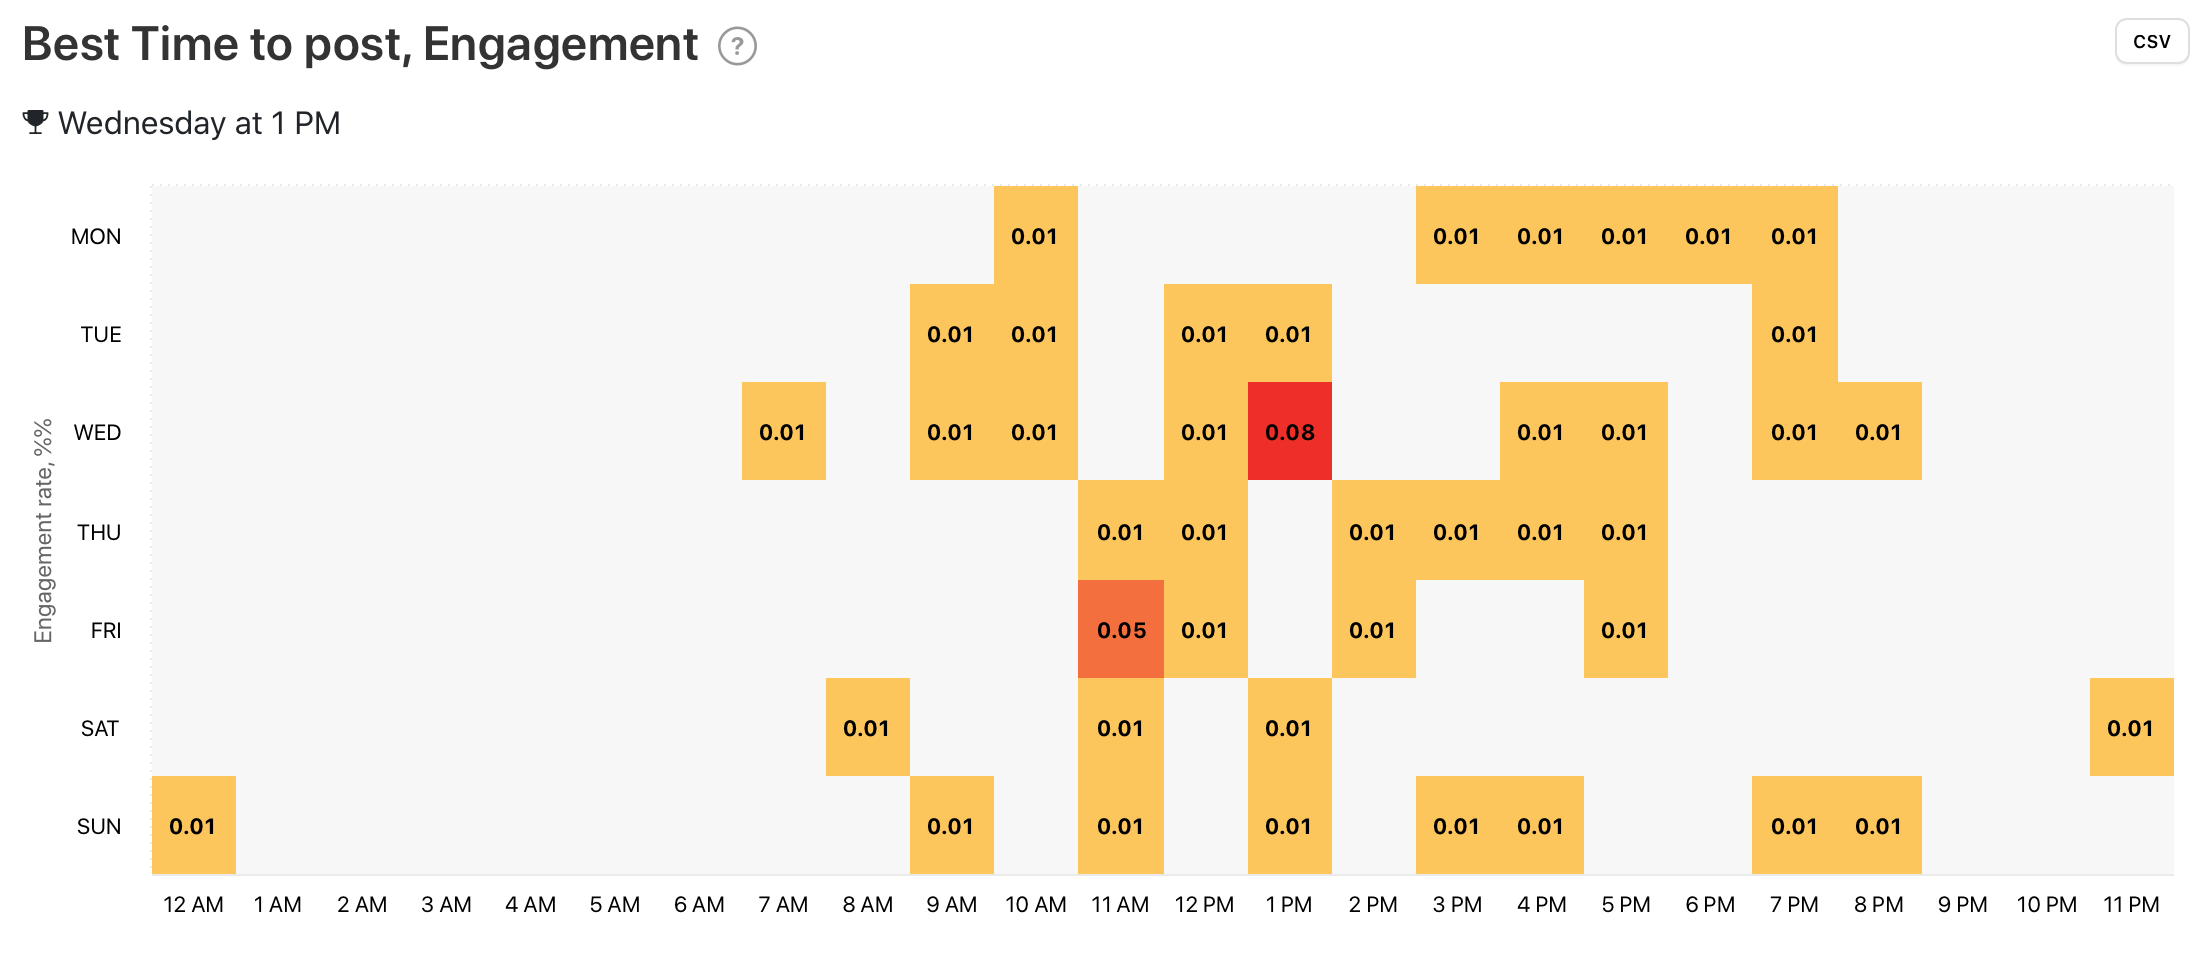 Best Time to post, Engagement graph by Minter.io